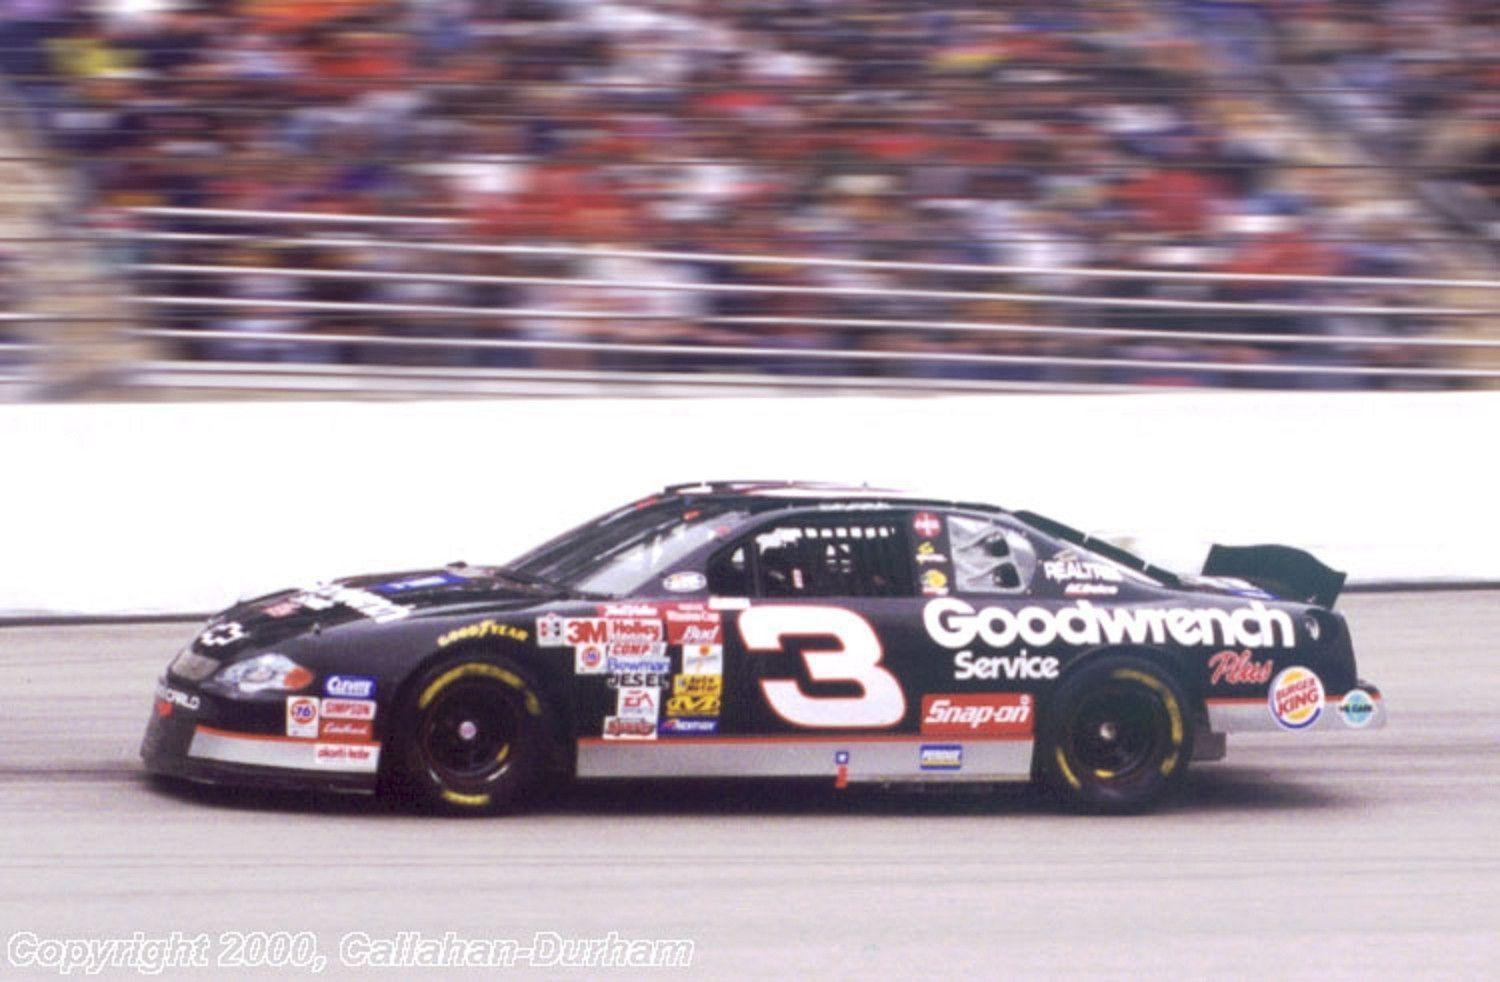 dale earnhardt sr wallpapers wallpaper cave. Black Bedroom Furniture Sets. Home Design Ideas